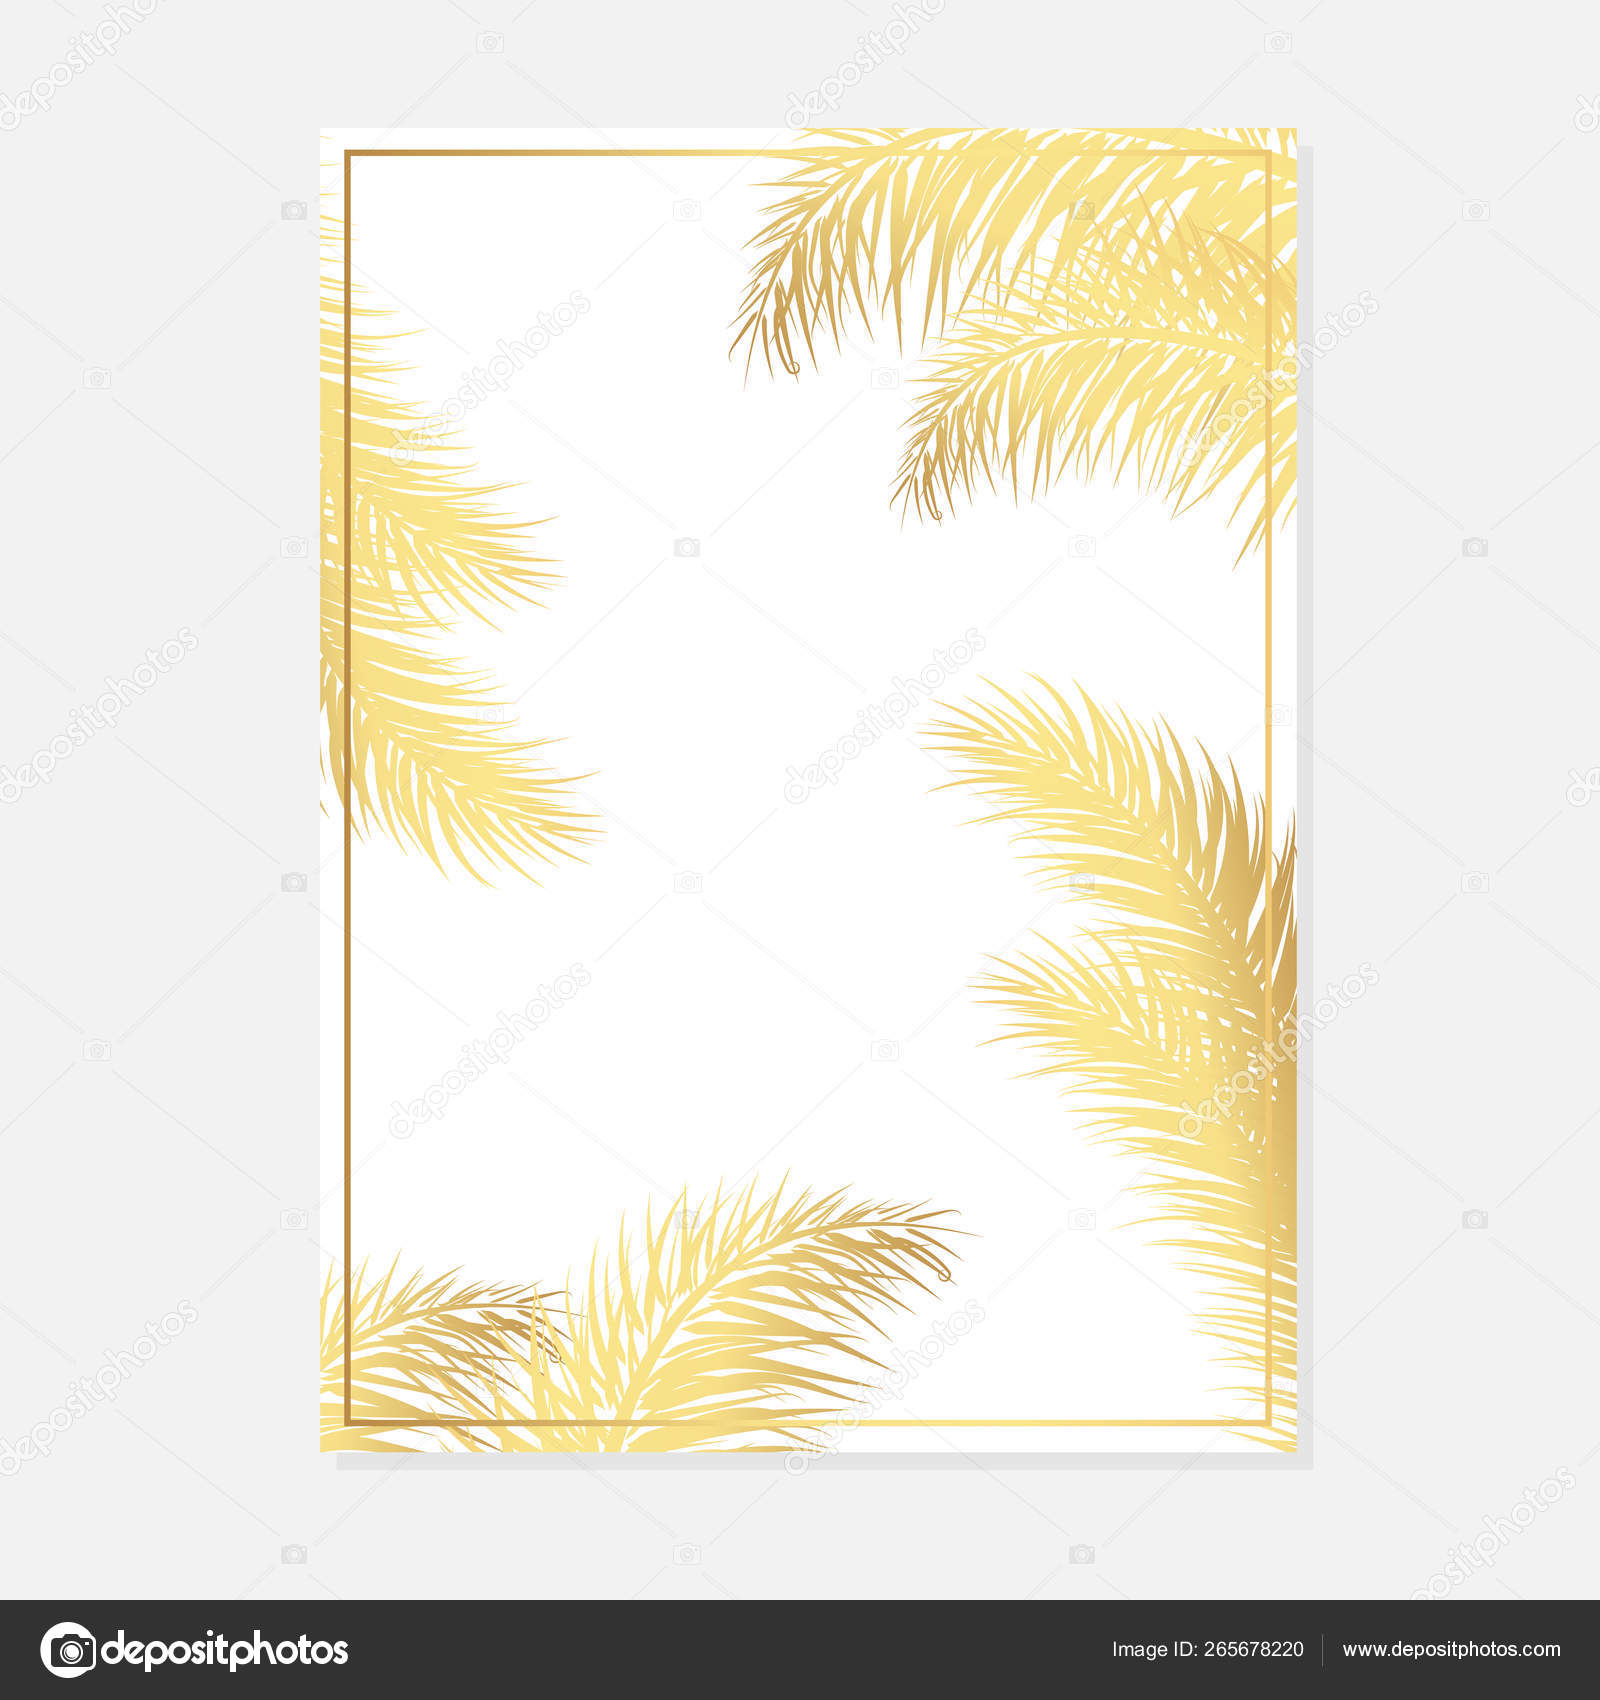 minimalist botanical wedding invitation card template design vector decorative greeting card or invitation design background wedding invitation save the date rsvp invite card vector image by c mila1717 vector stock 265678220